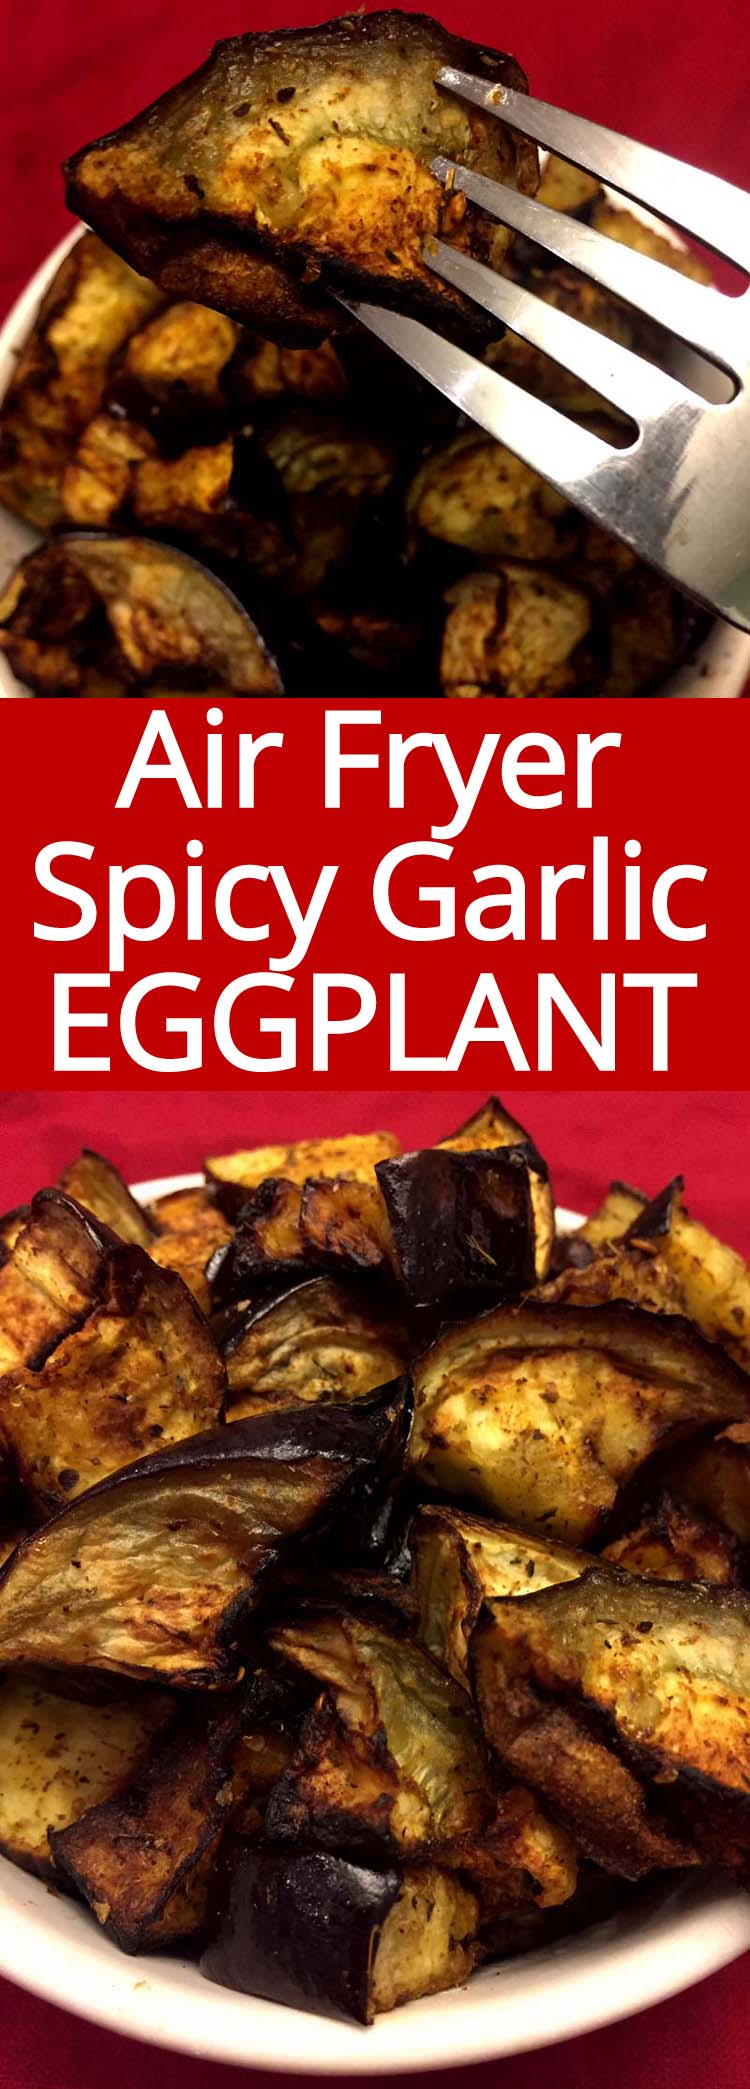 This air fryer eggplant is amazing! So crispy, spicy and garlicky! Very quick and easy to make in the air fryer, this eggplant is so addictive!